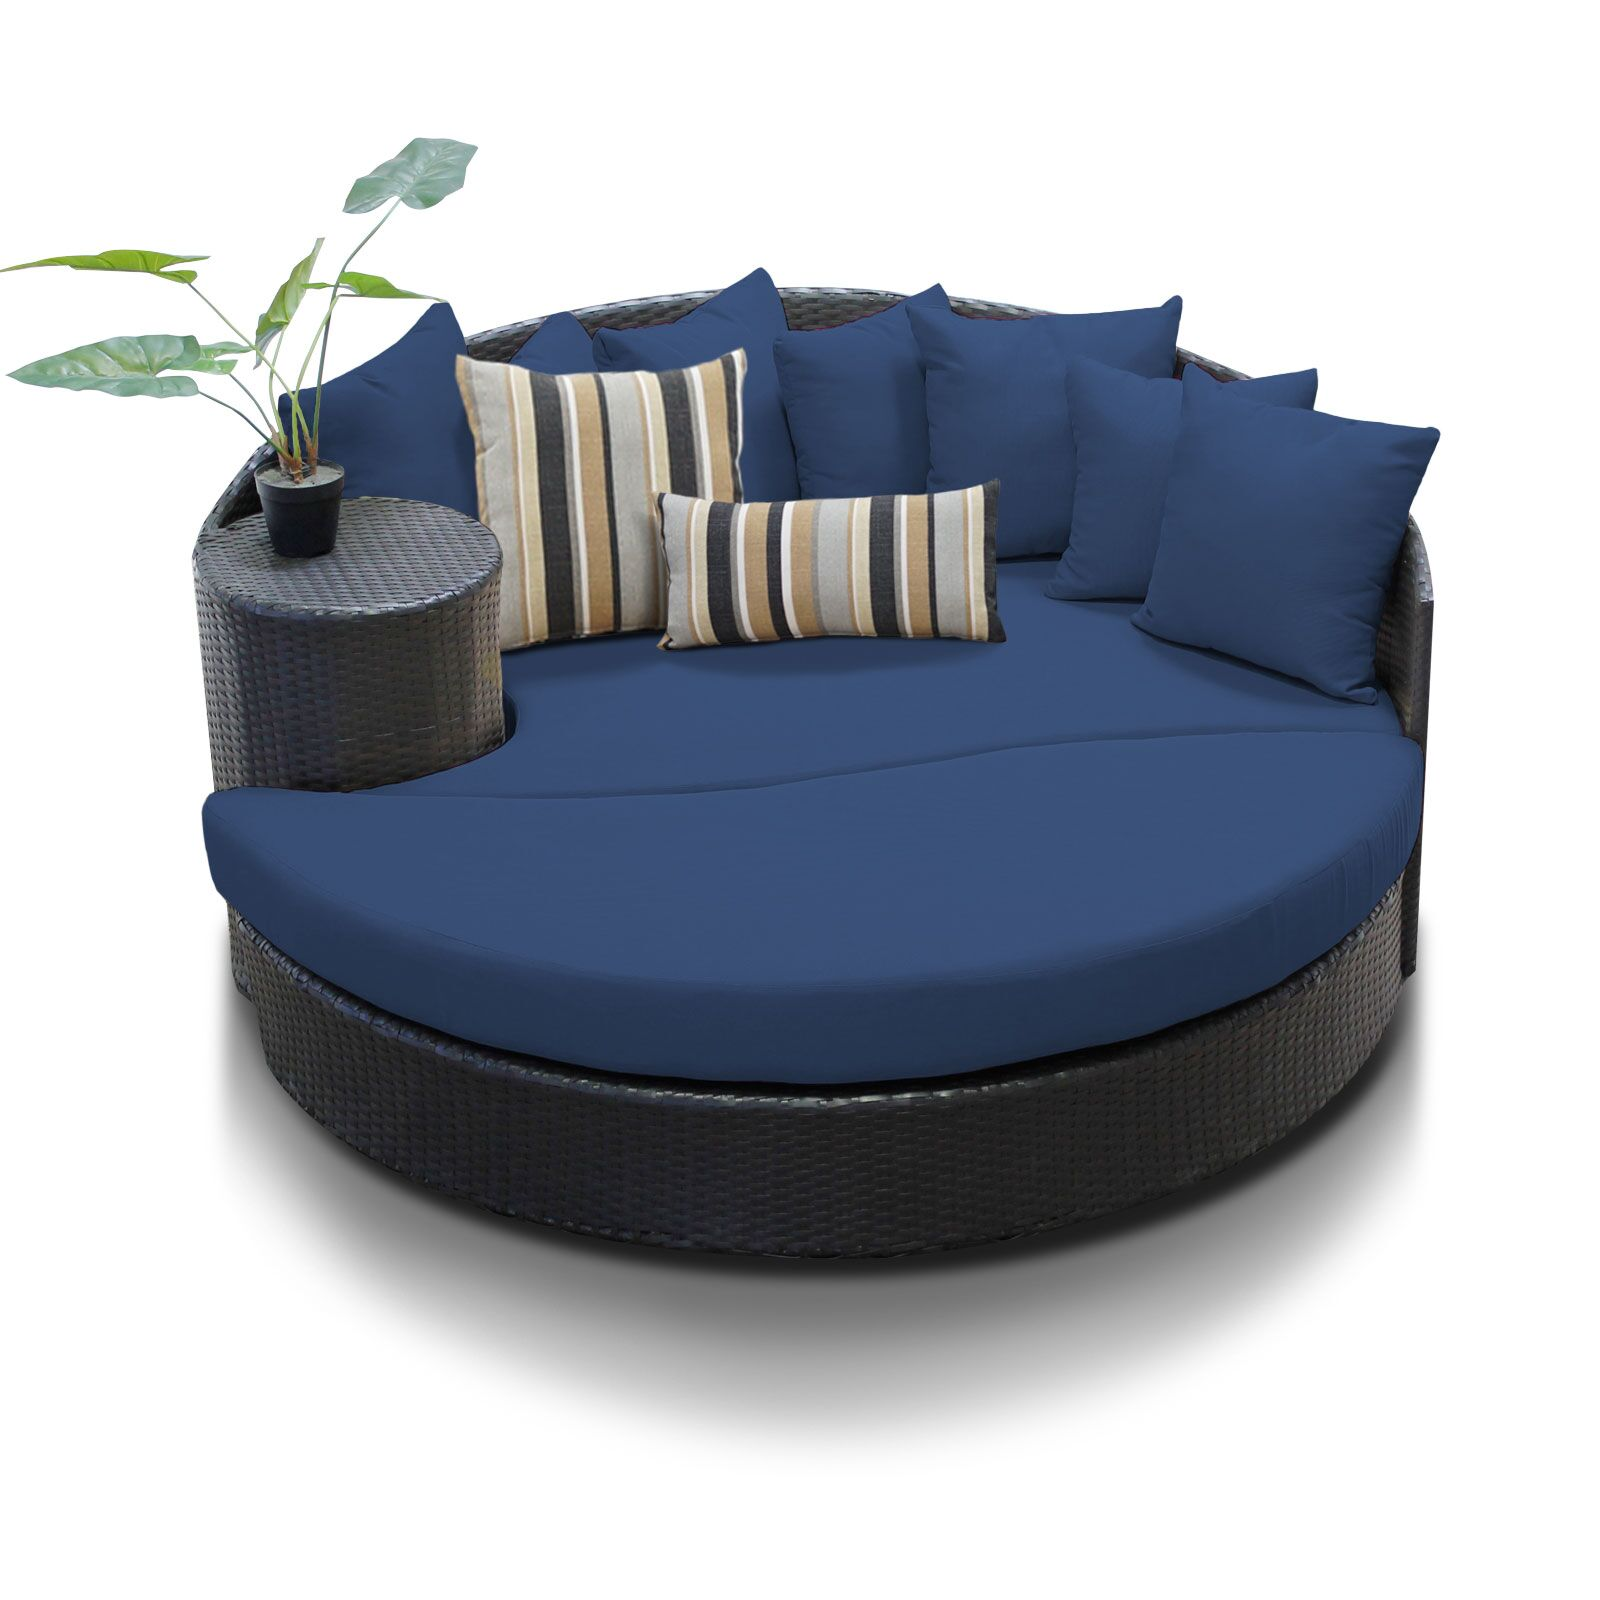 Newport Circular Sun Daybed with Cushions Color: Navy